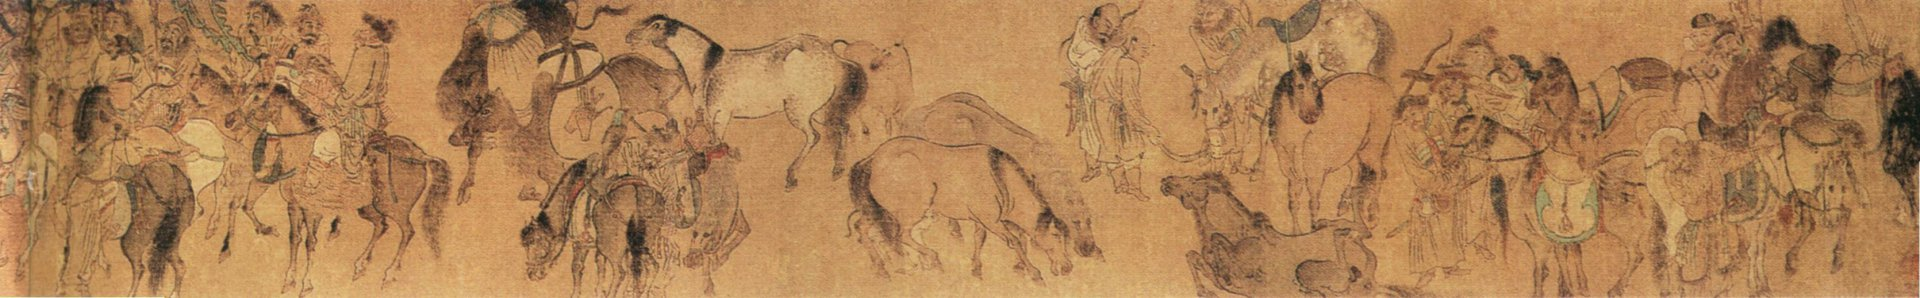 088_1c0242b.Ancient_Chinese_Painting.jpg